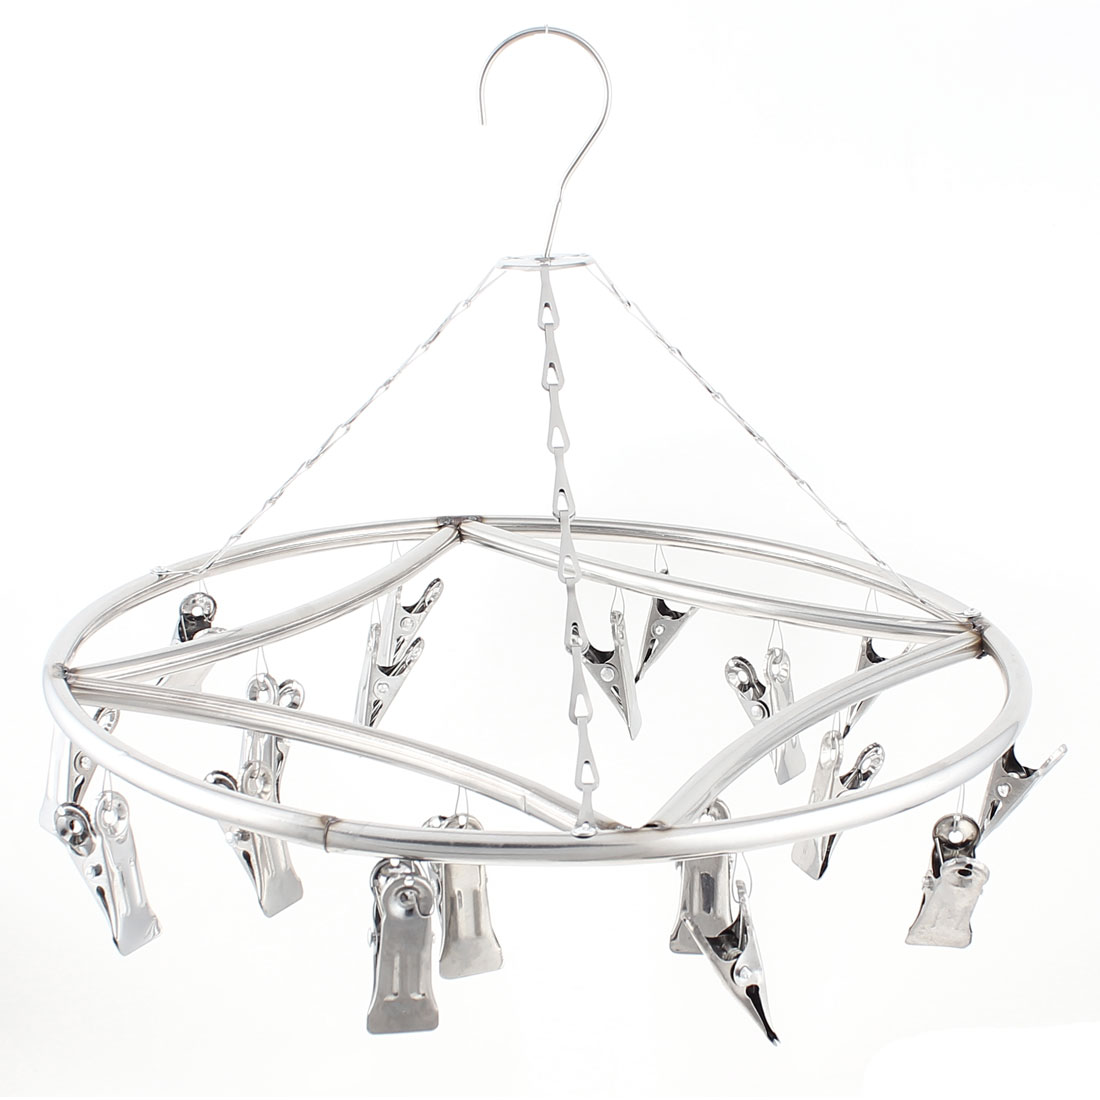 """36cm/14.2"""" Dias Stainless Steel Round 18 Pegs Socks Towels Clotheshorse Hanger Silver Tone"""